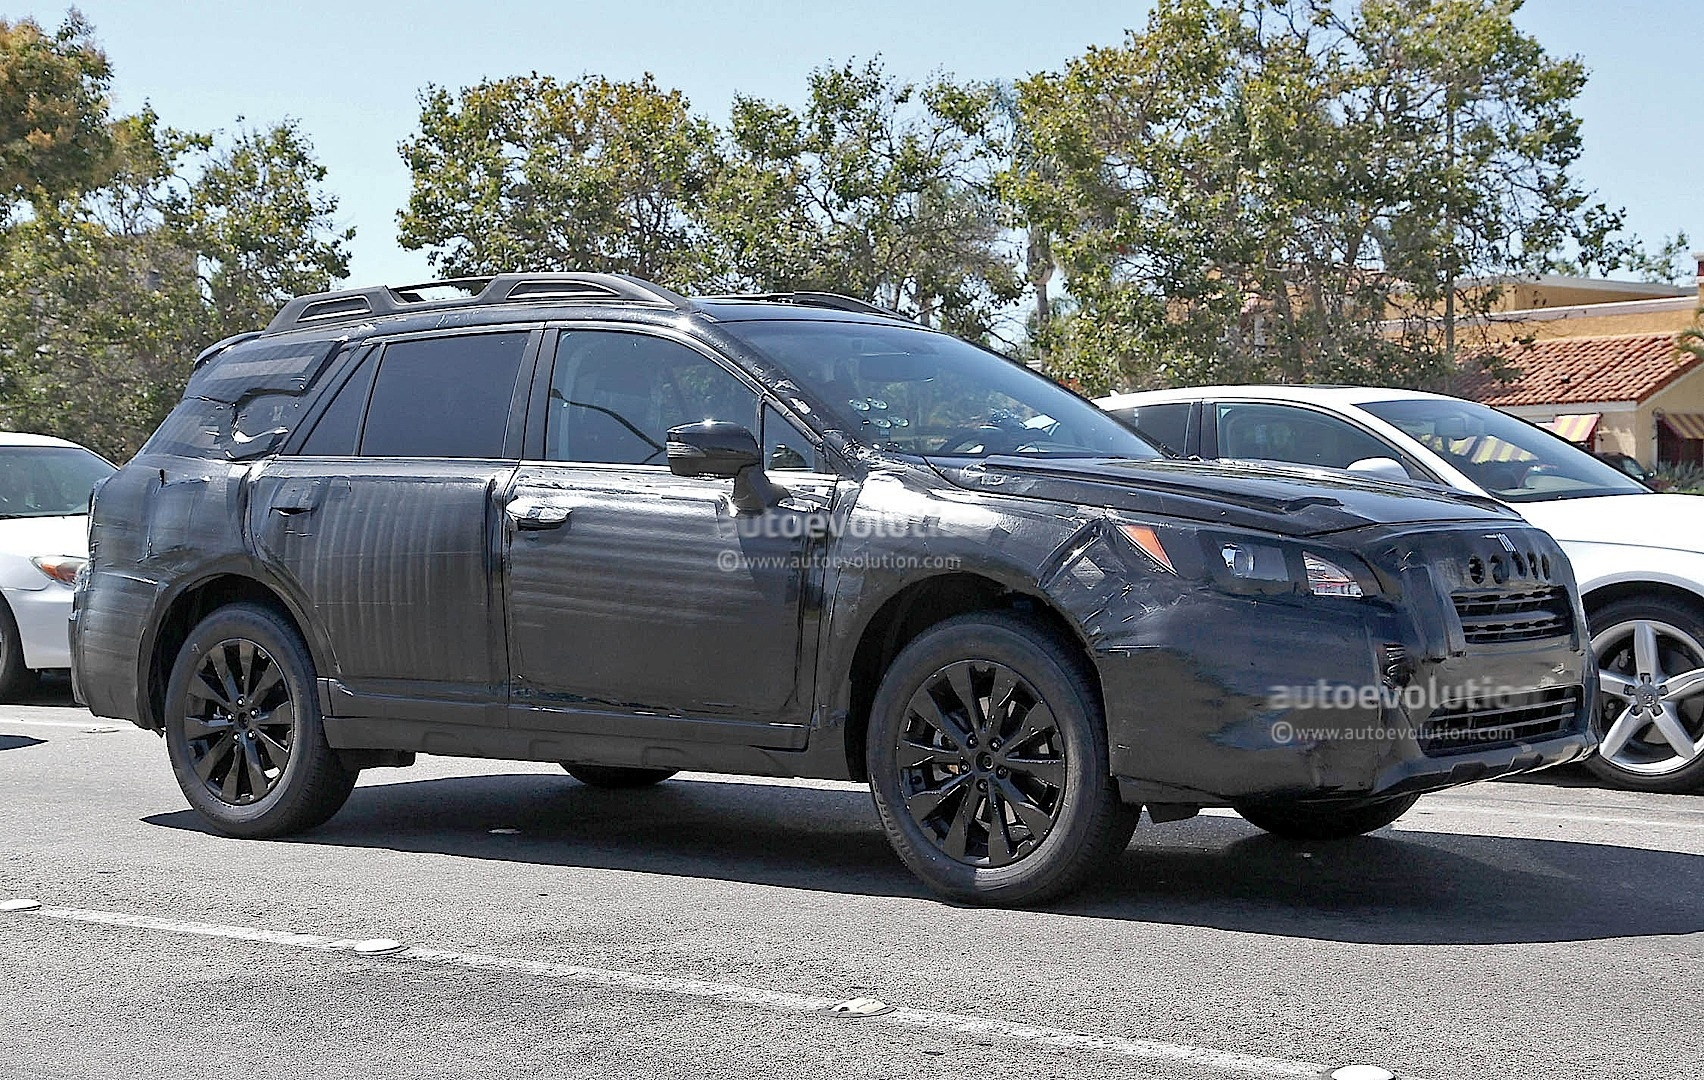 2015 Subaru Outback - Photo #2